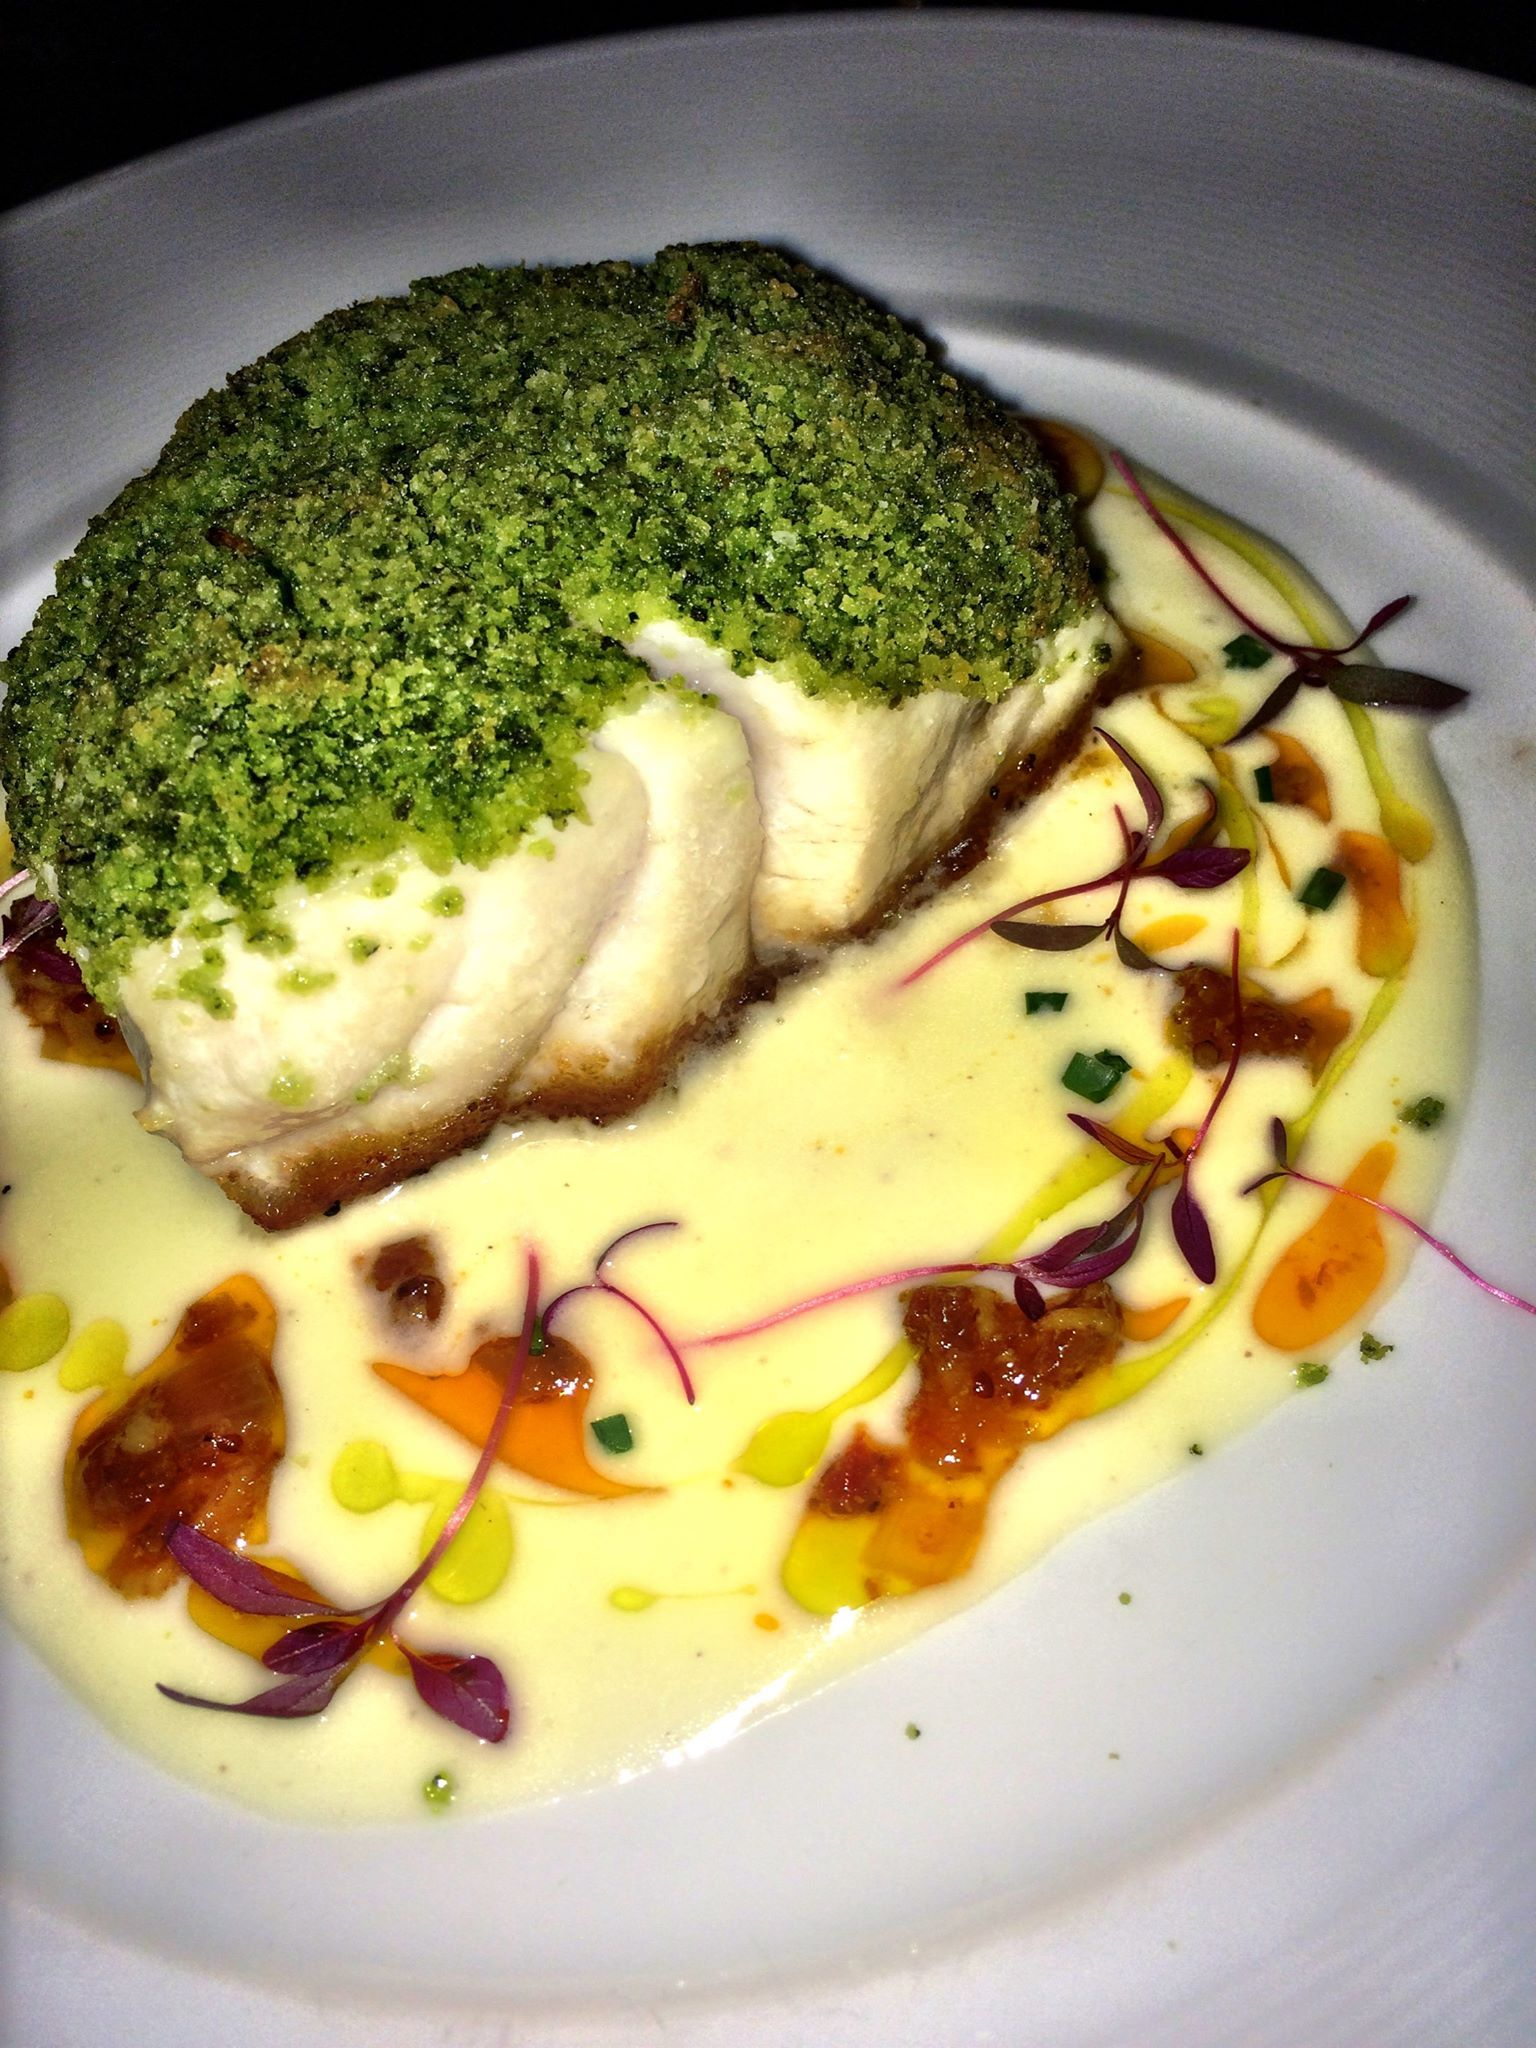 Herb Crusted Golden Tile served with Lemon Butter Sauce and Bacon Marmalade